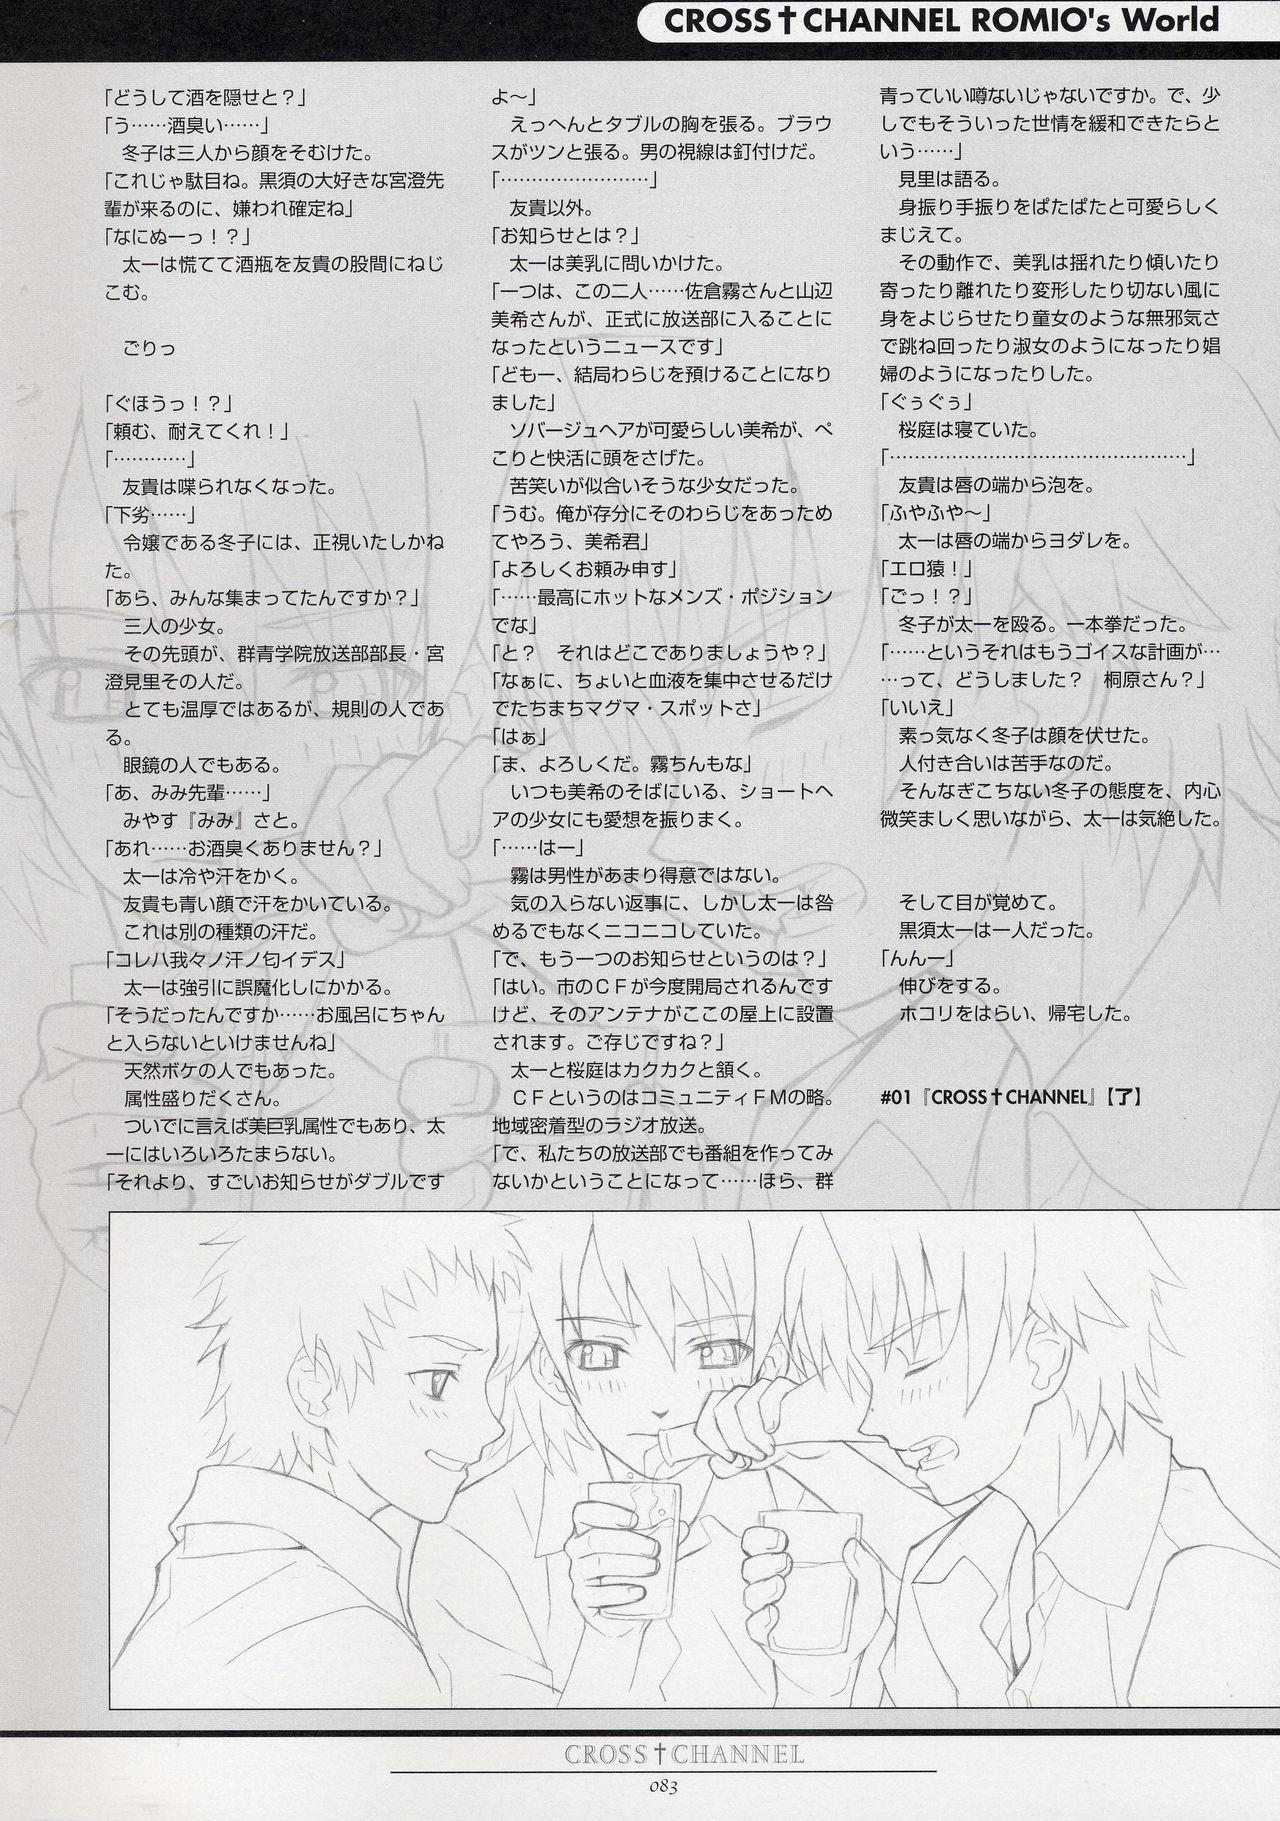 CROSS†CHANNEL Official Setting Materials 93